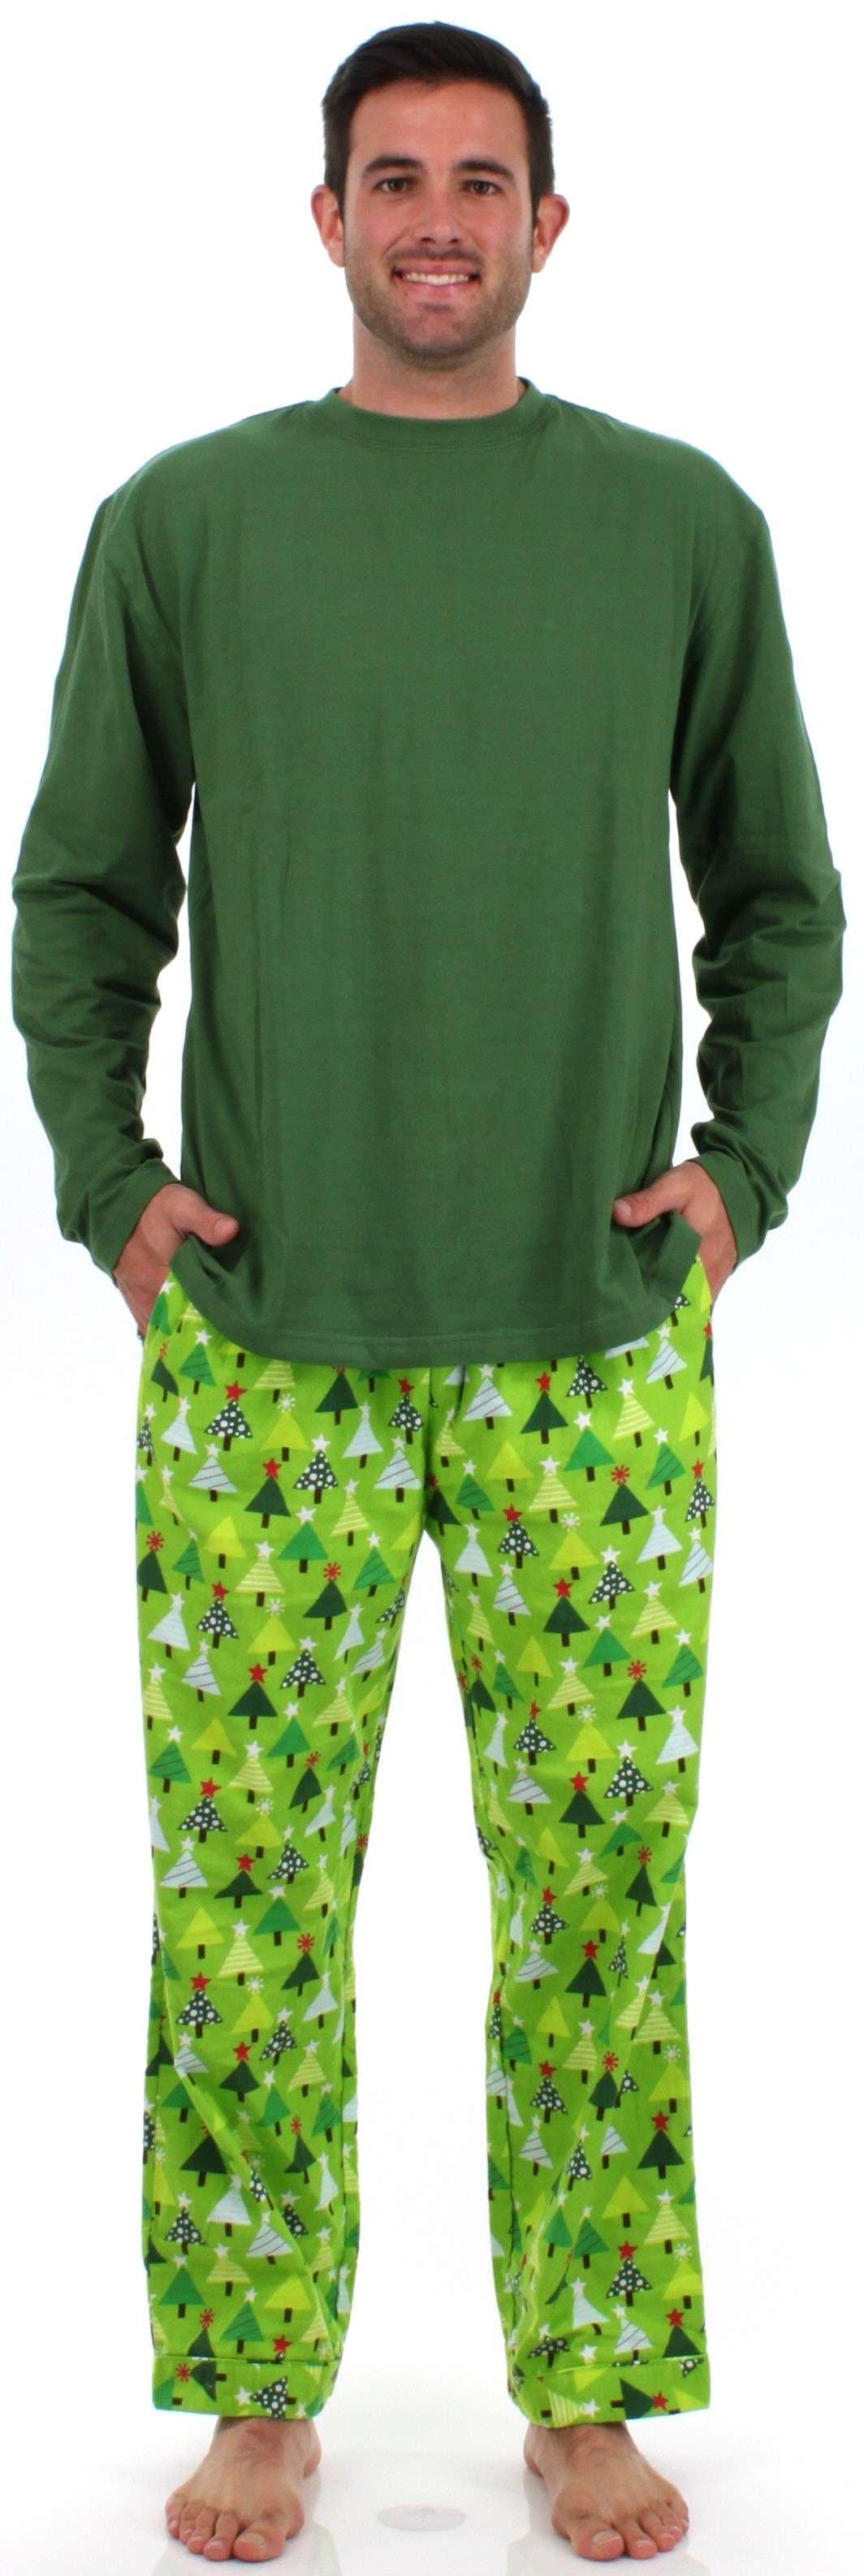 191b49f6af Men s Christmas Trees Green Flannel Pajama Sets by SleepytimePjs ...